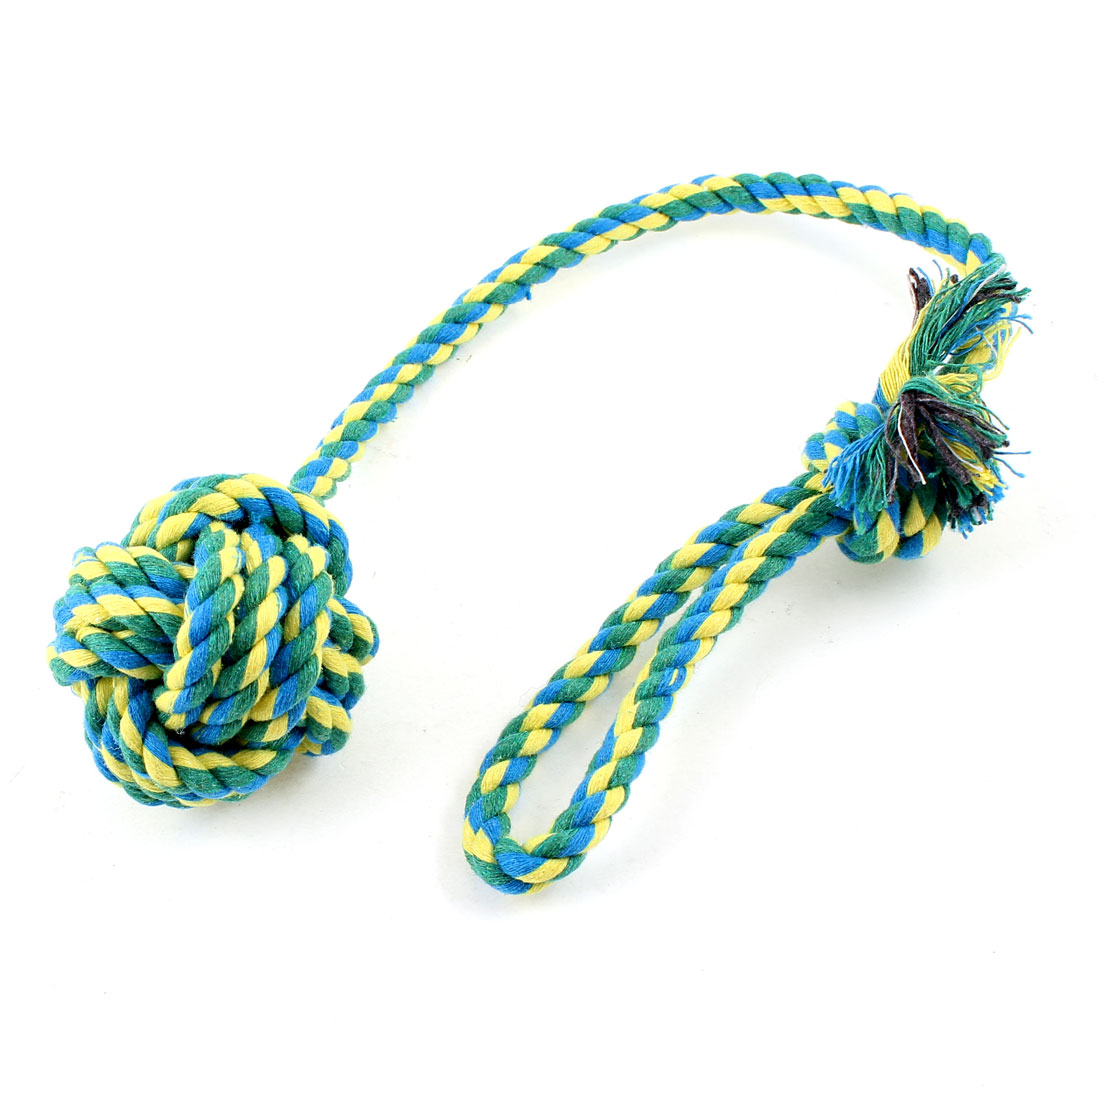 Dog Pet Assorted Color Braided Rope Bone Chew Tug Toy 45cm Long